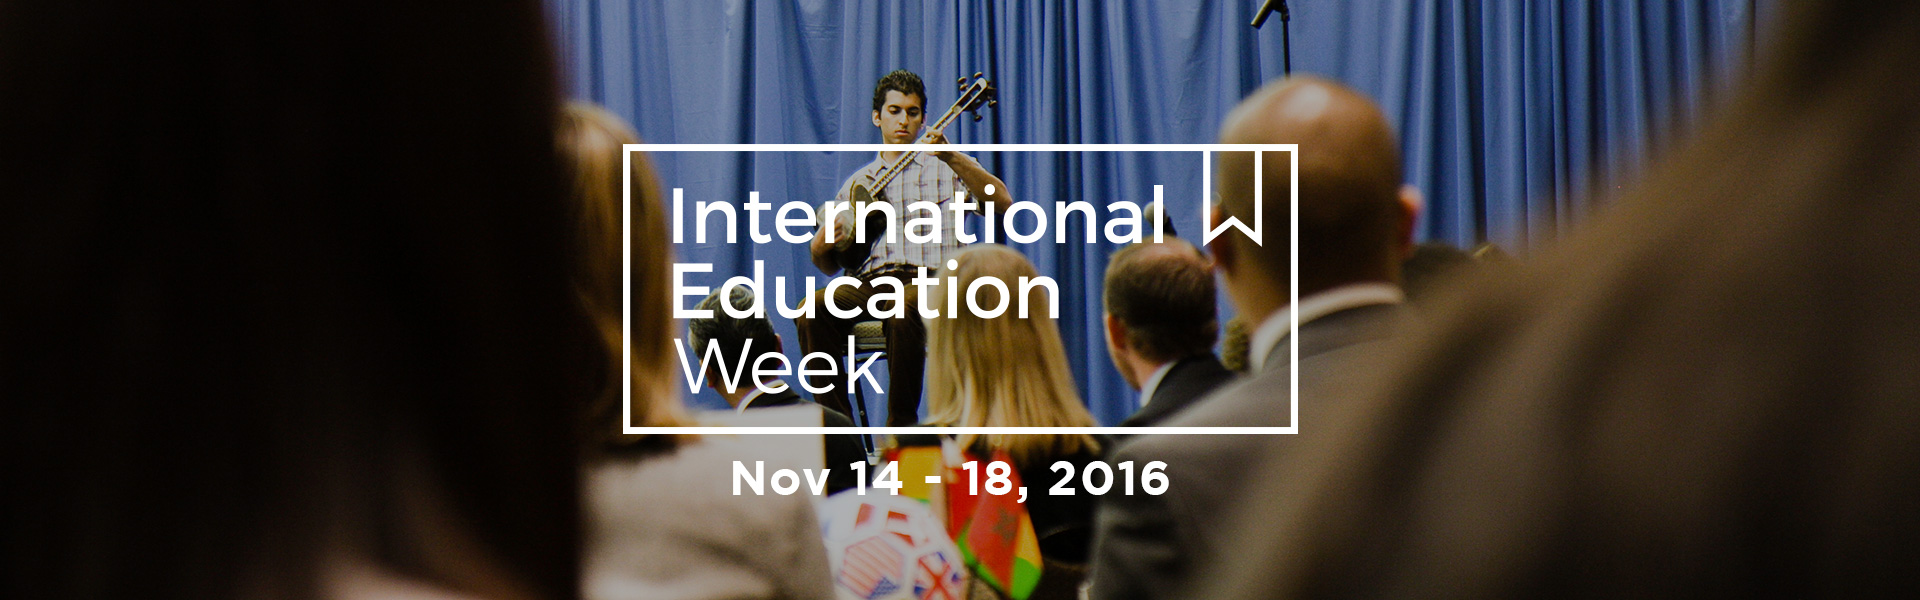 UCF_IEW-2016_Web-Banner_1920x600